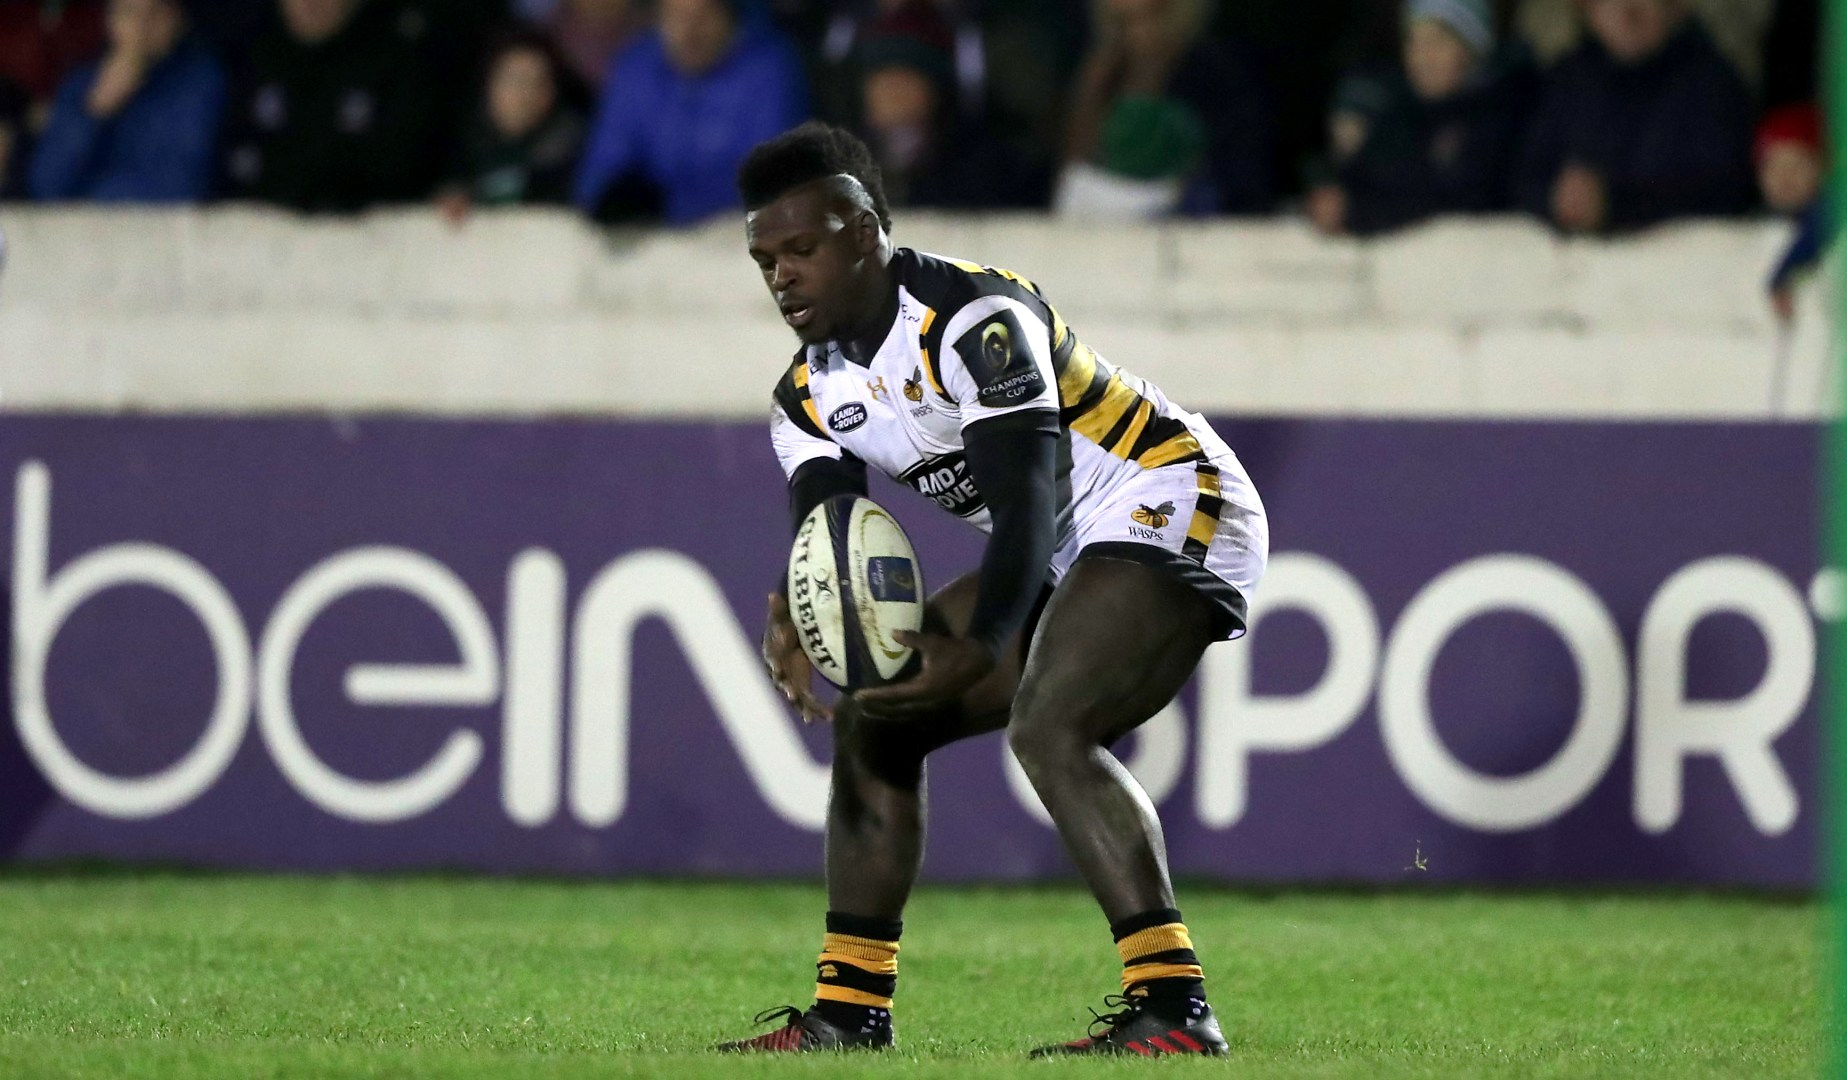 LionsWatch: Wade and Visser catch the eye out wide